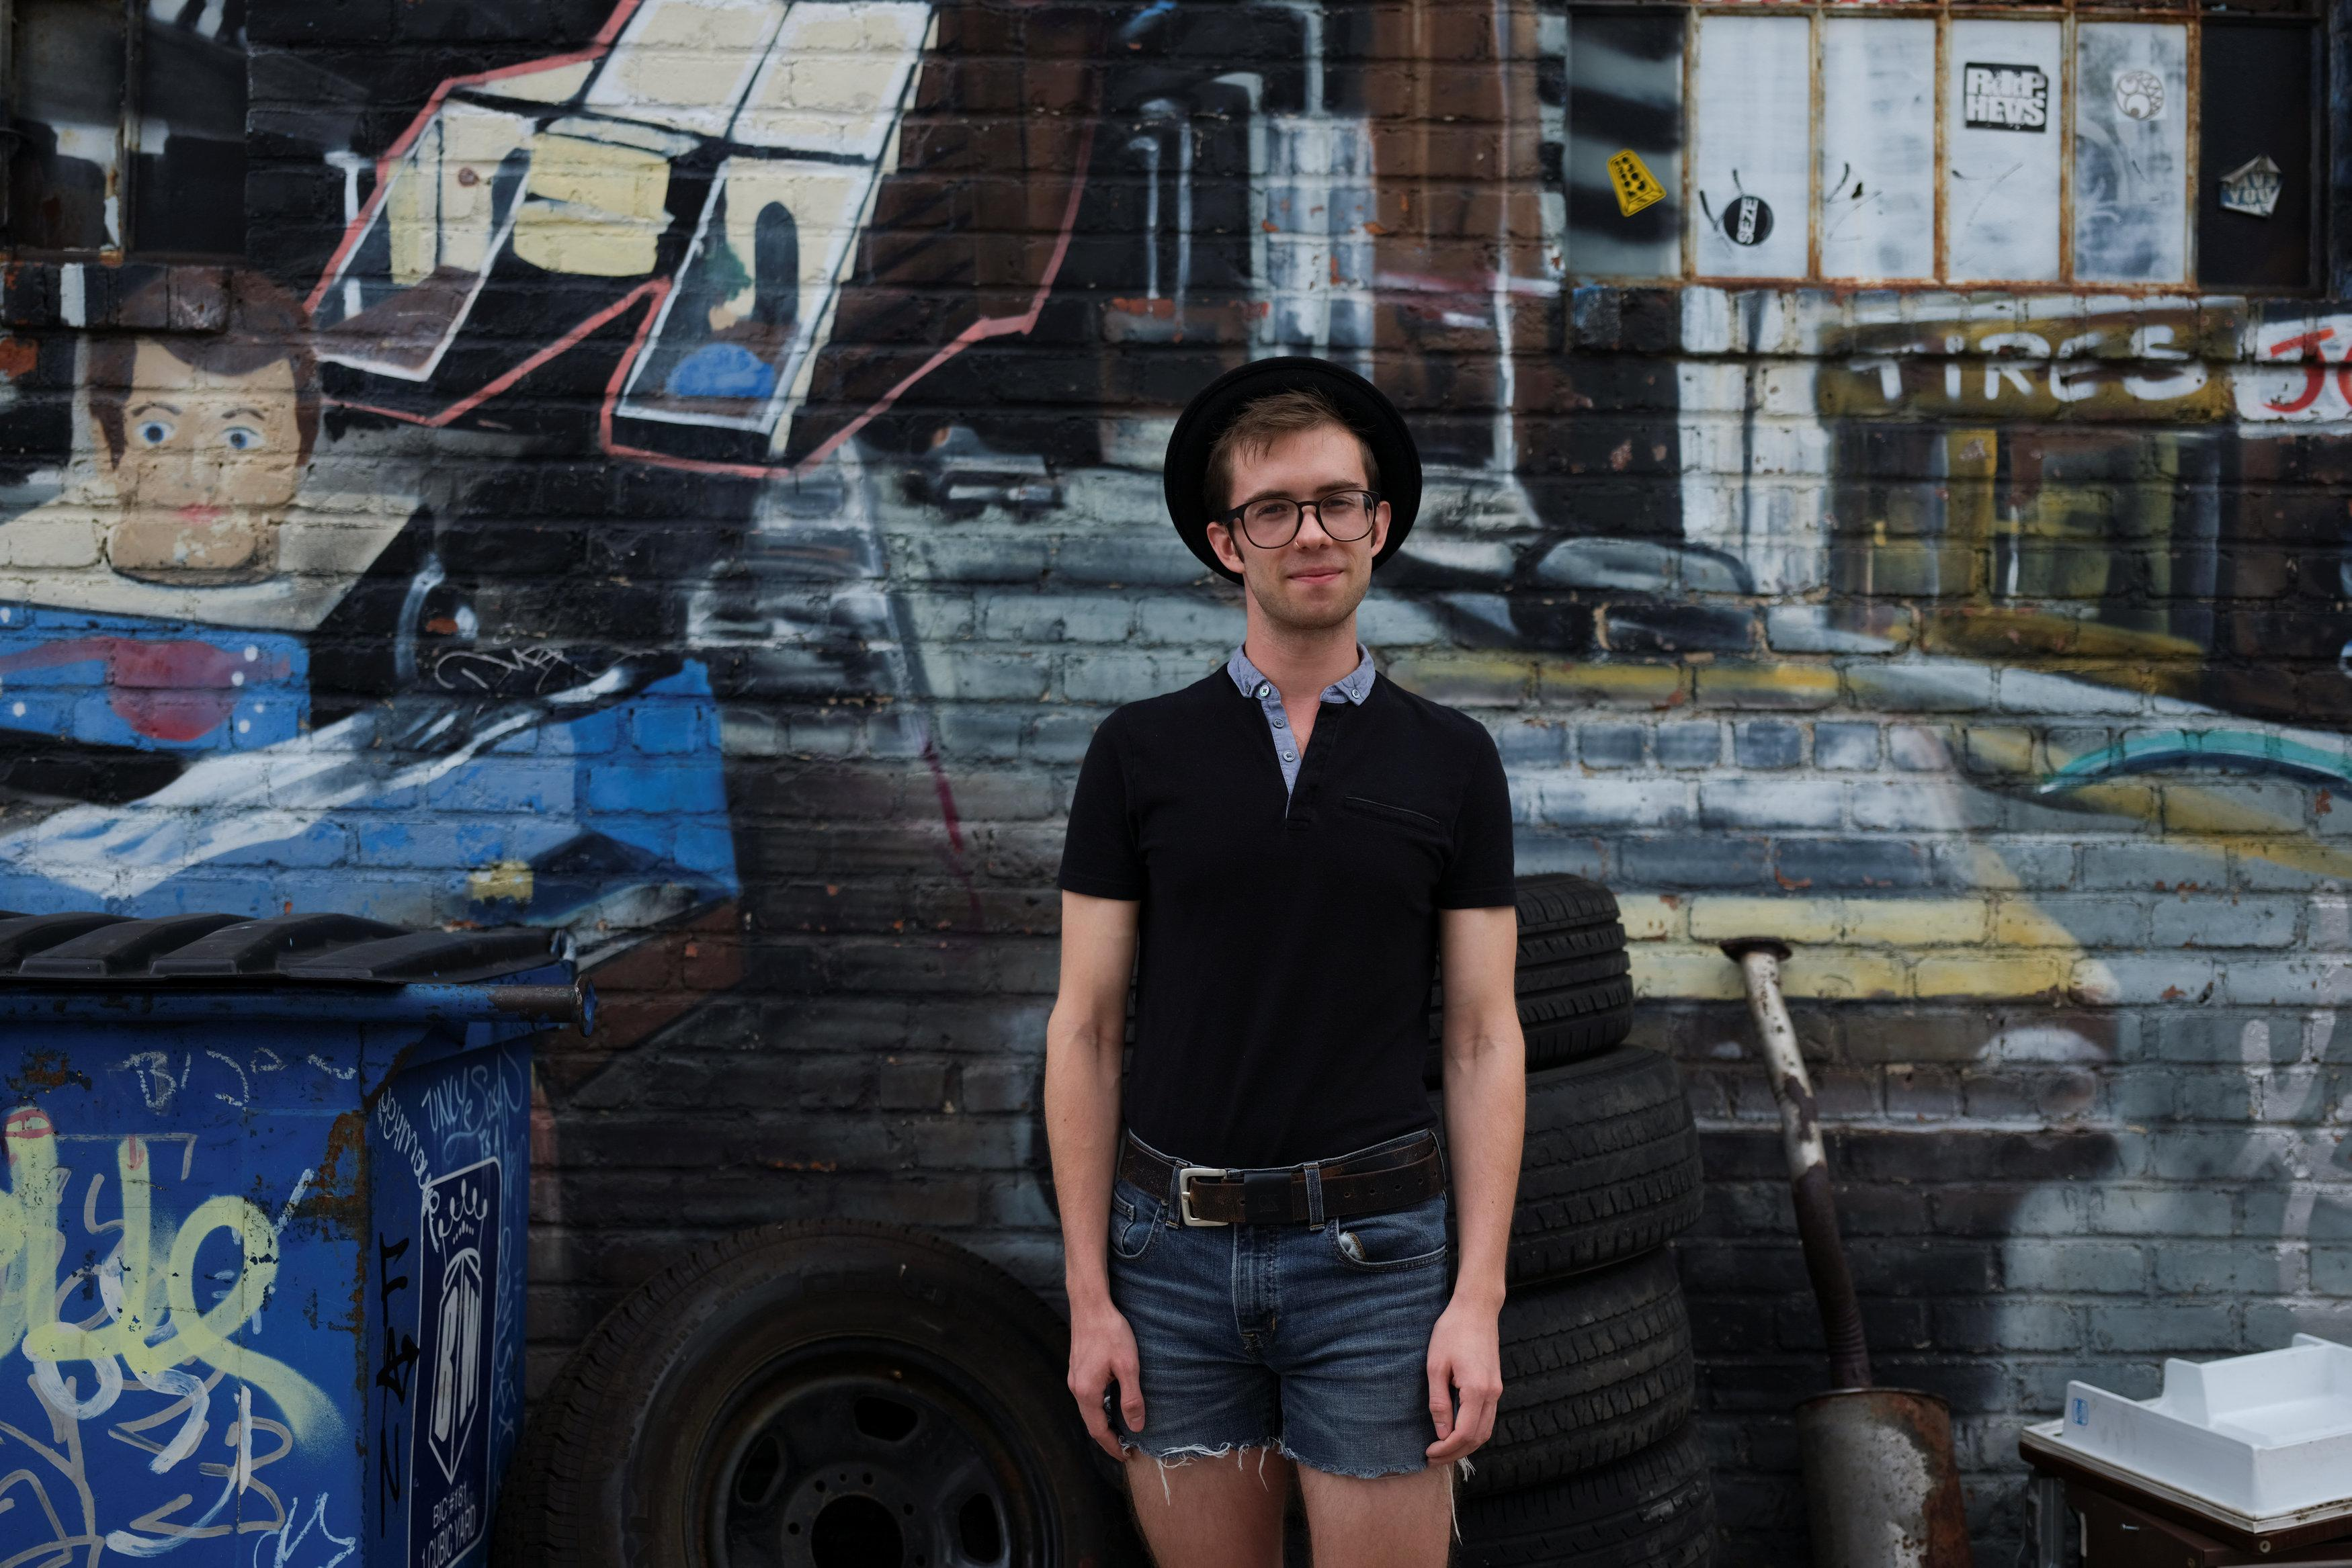 Seth Hatch, 24, an actor who works at a thrift shop in Williamsburg, poses for a picture in the Brooklyn borough of New York, U.S., September 2, 2018.  Caitlin Ochs